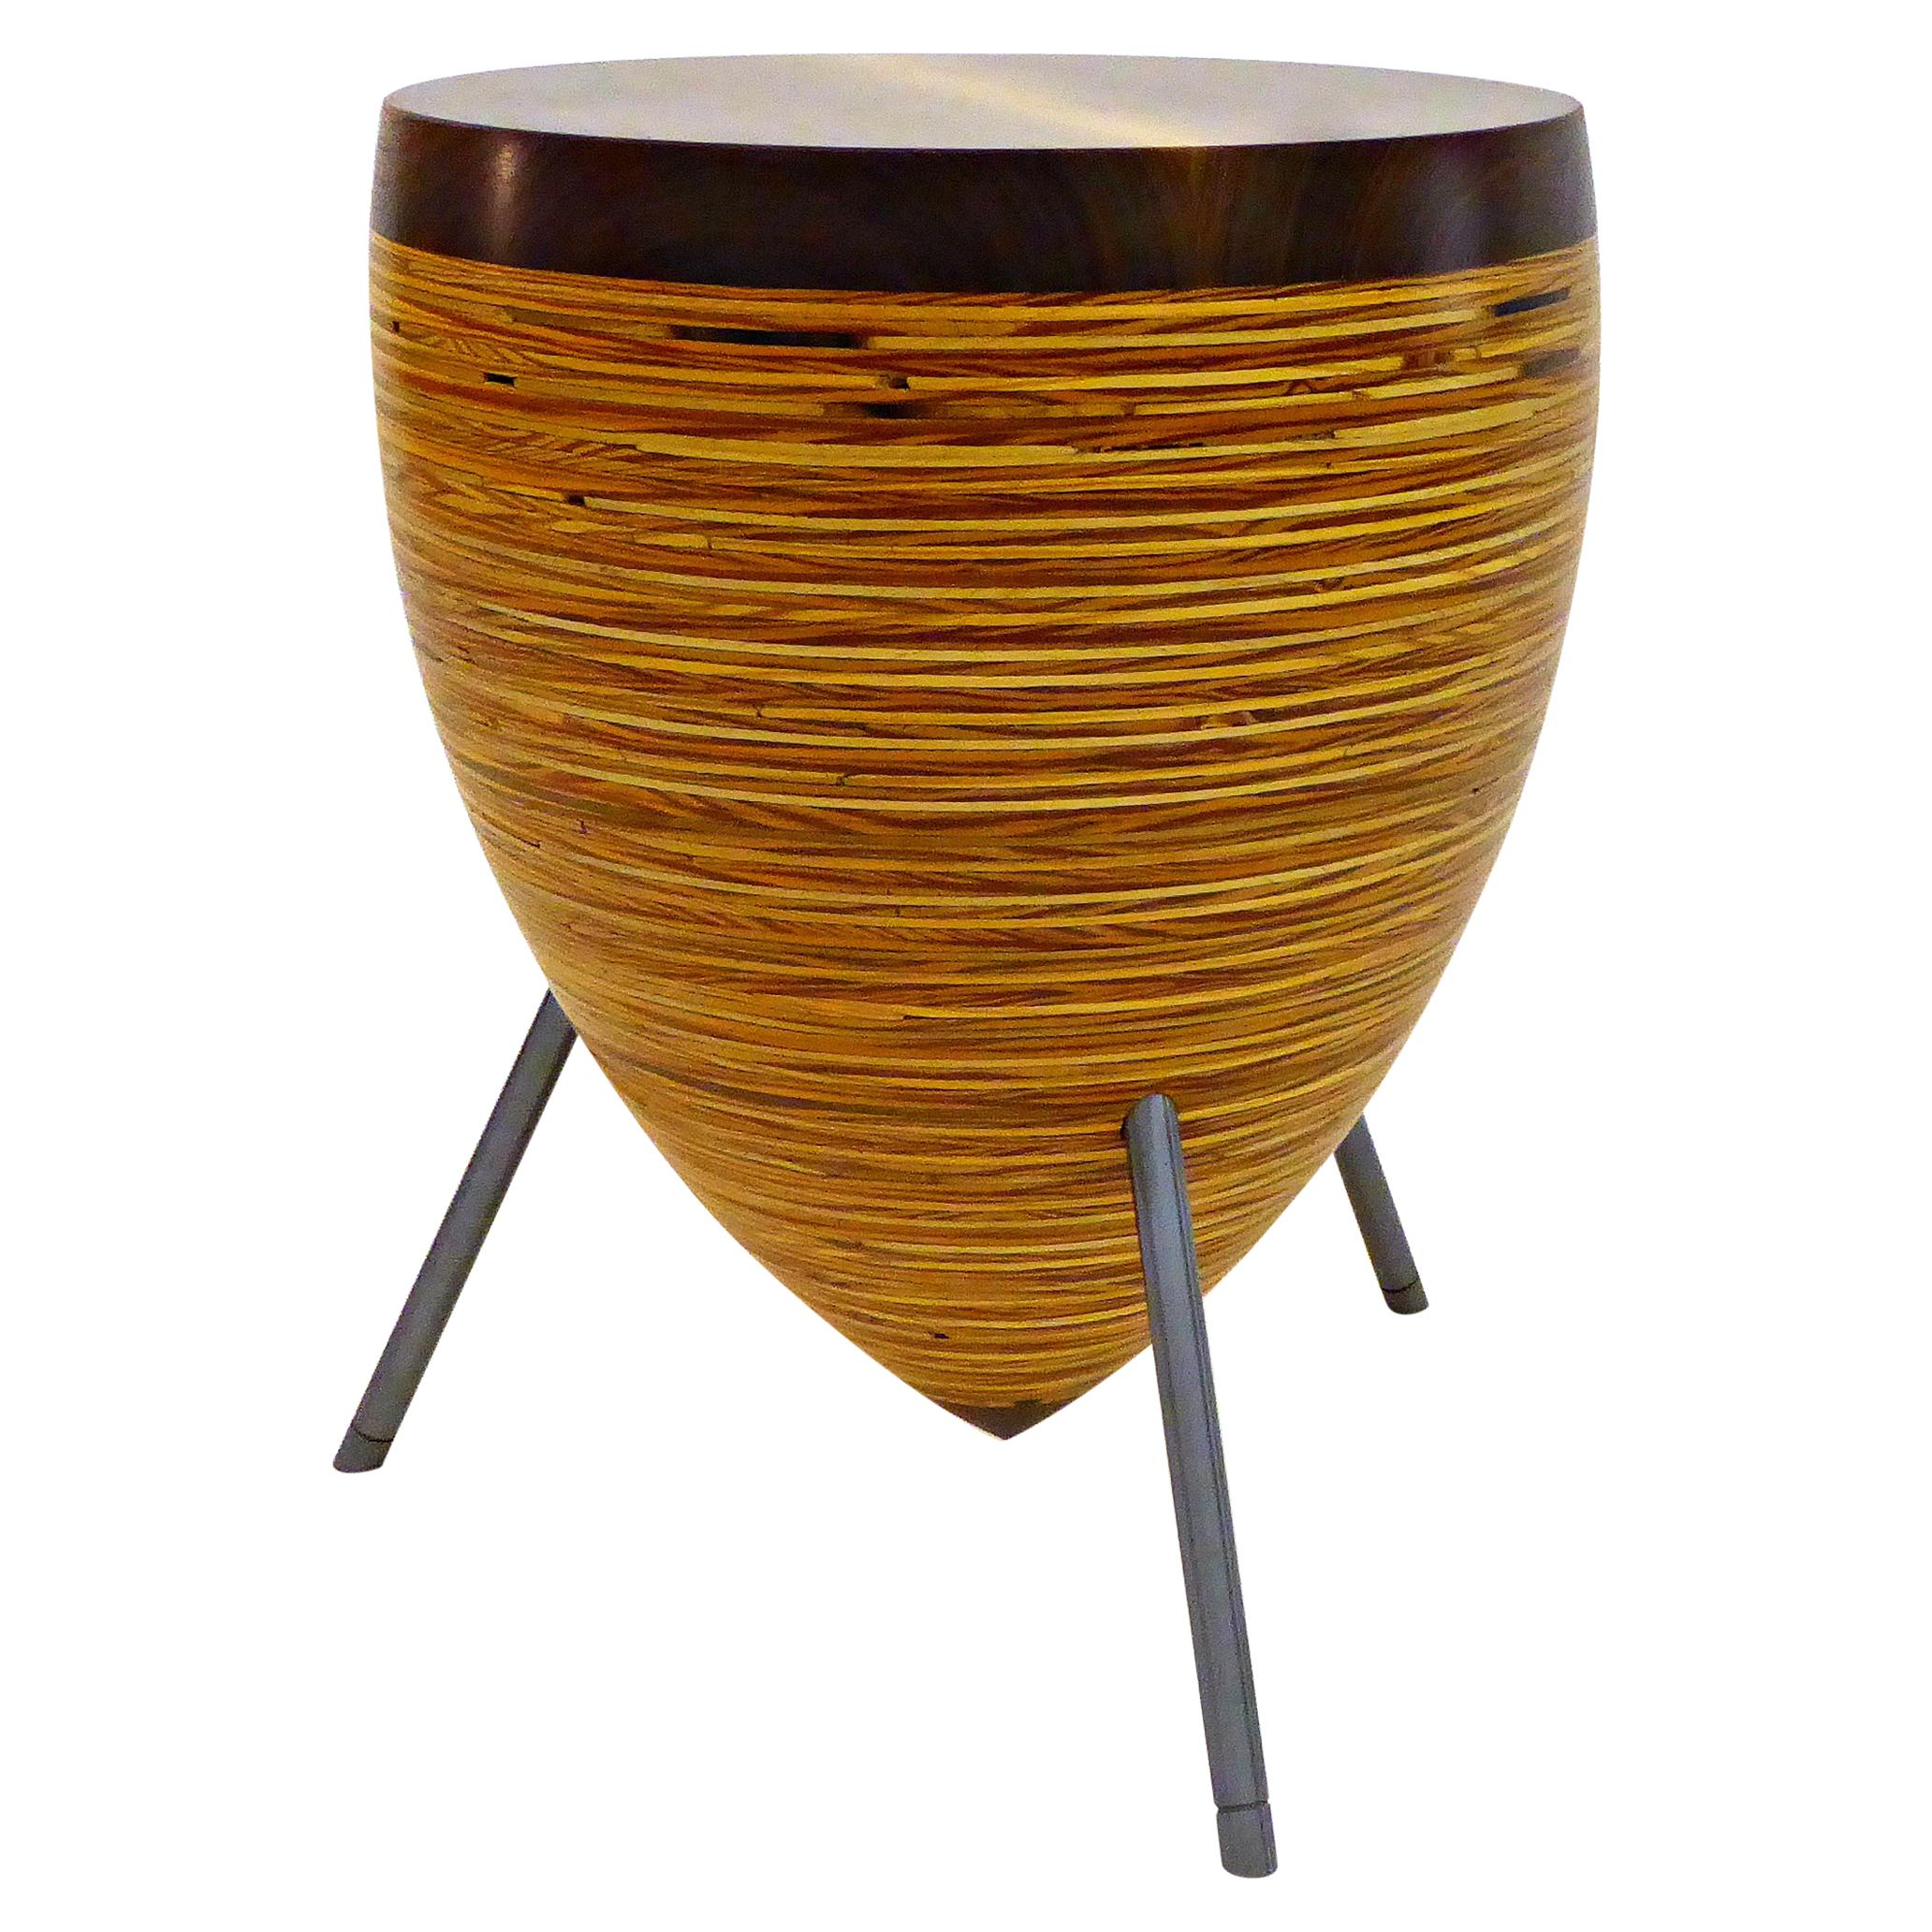 Modern Wooden and Steel Stool and Table 'Small'